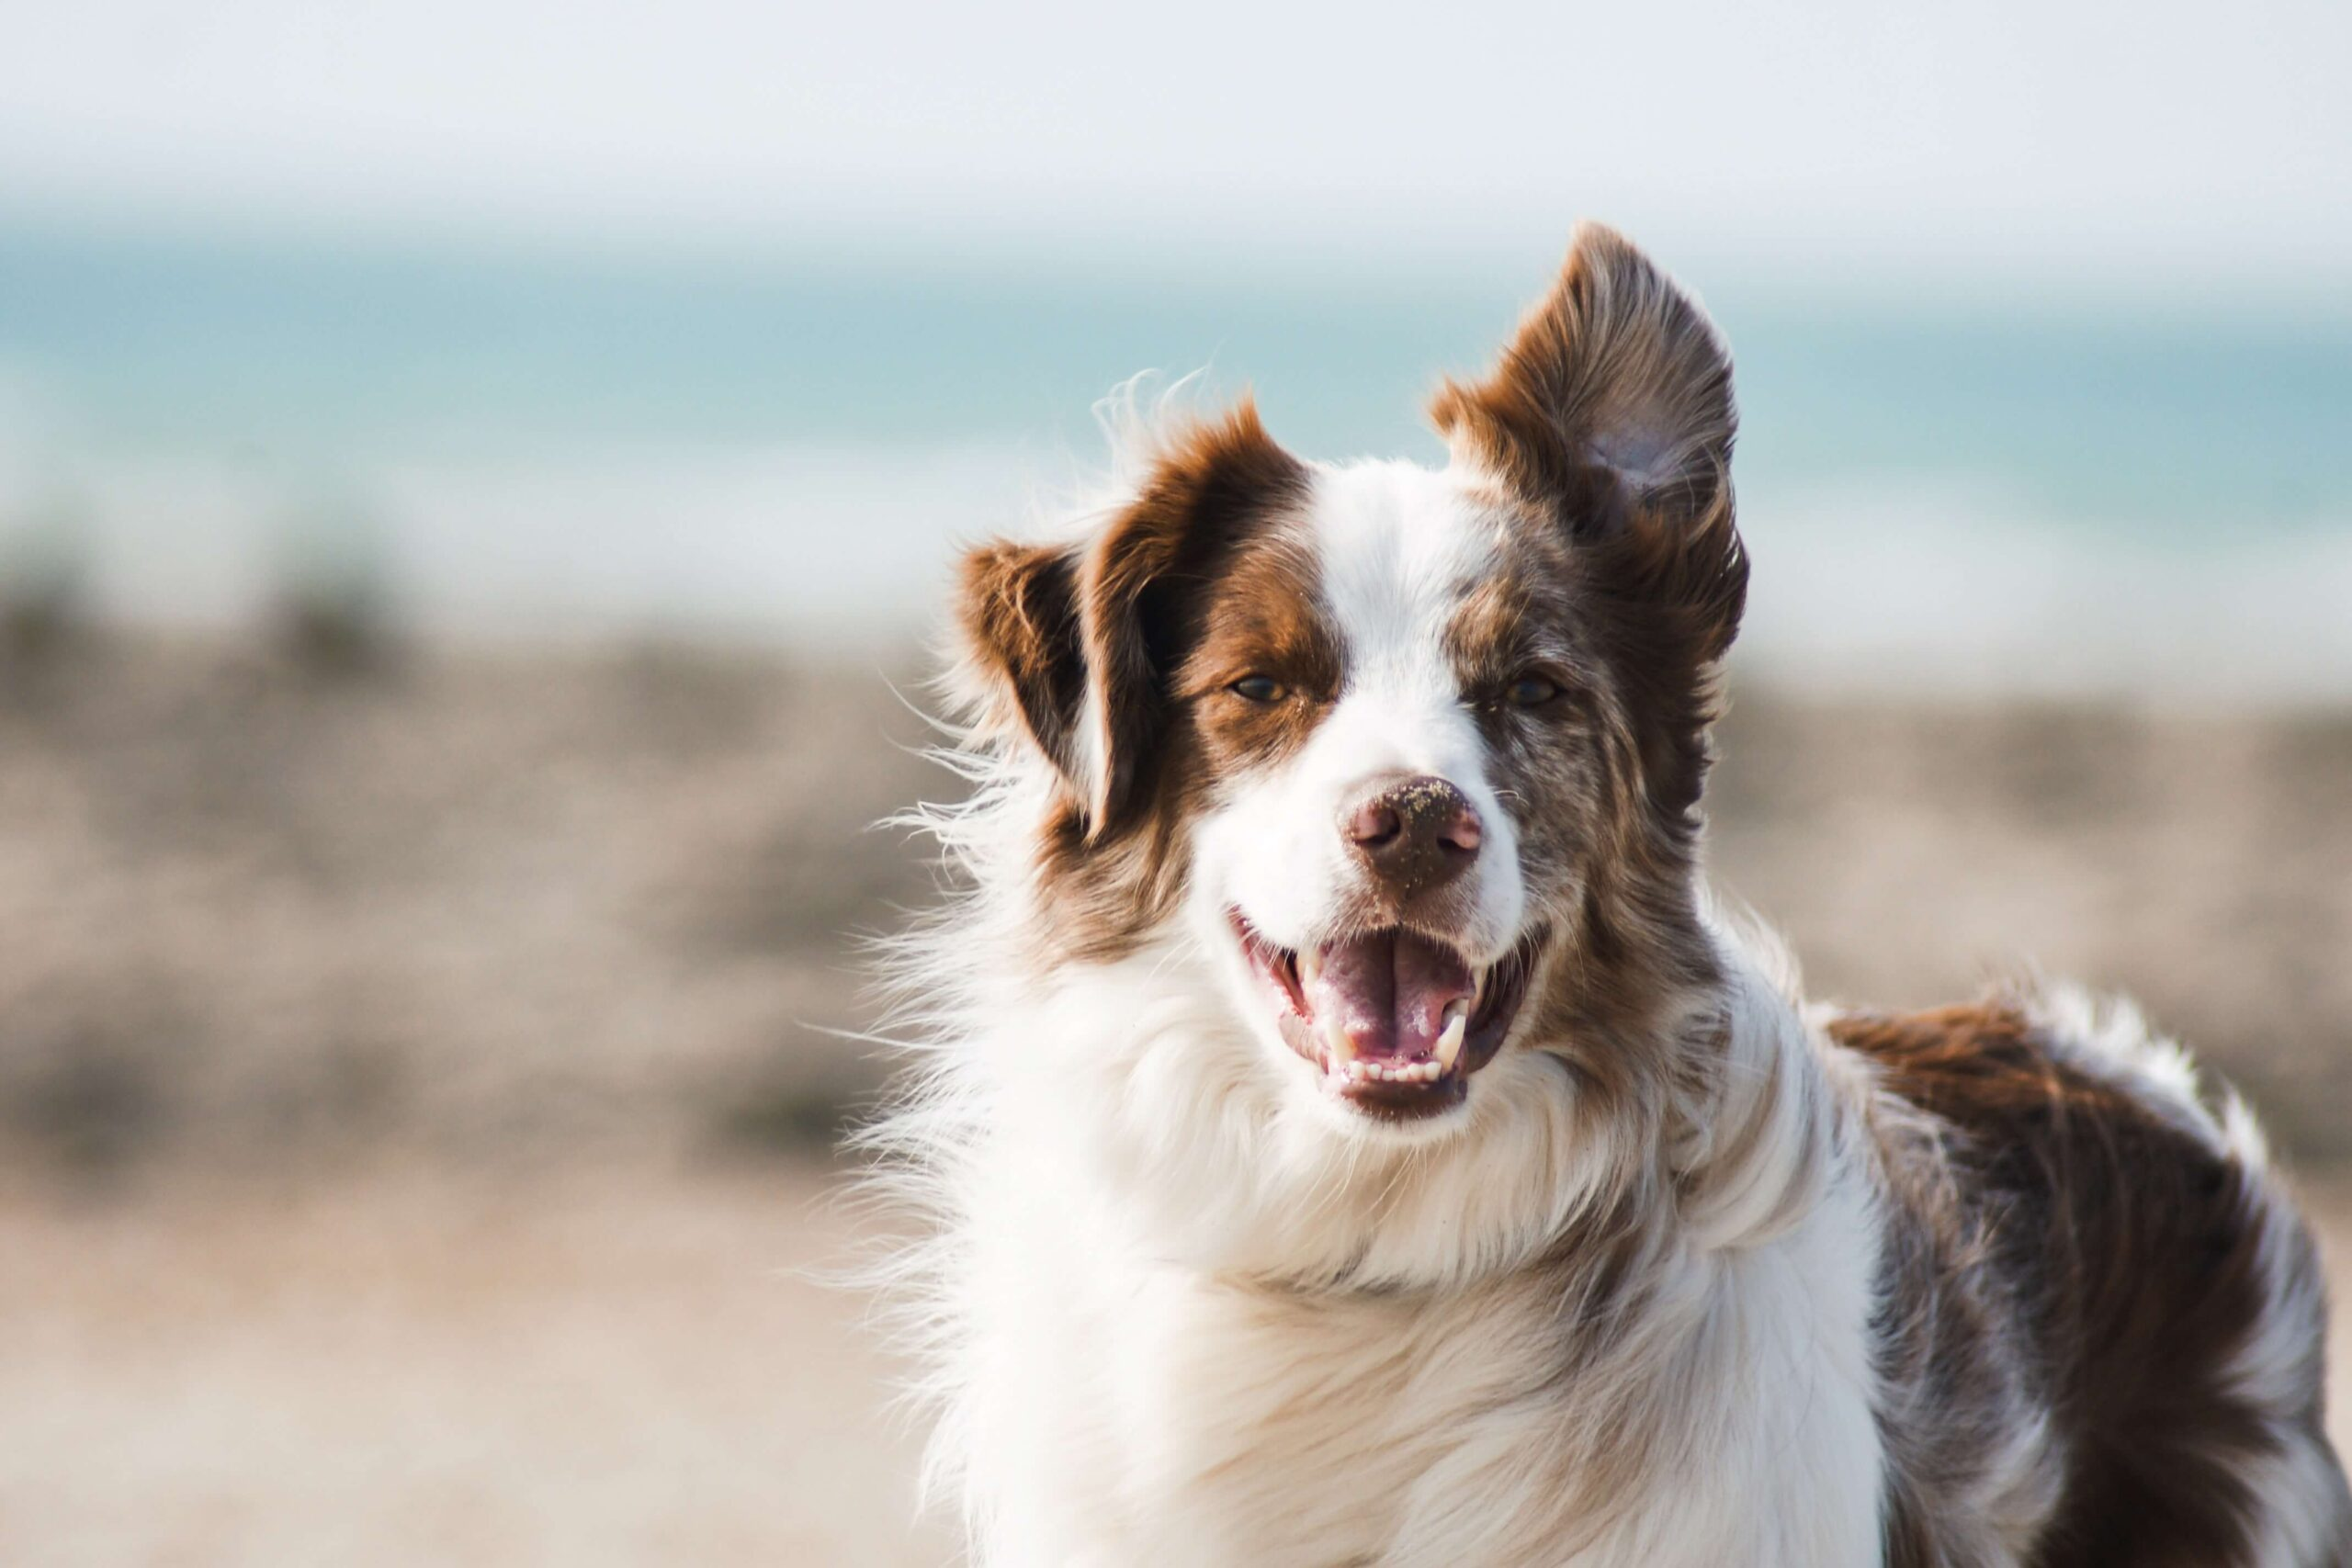 Why Should I Choose a Dog Boarding Facility Instead of My Veterinarian?